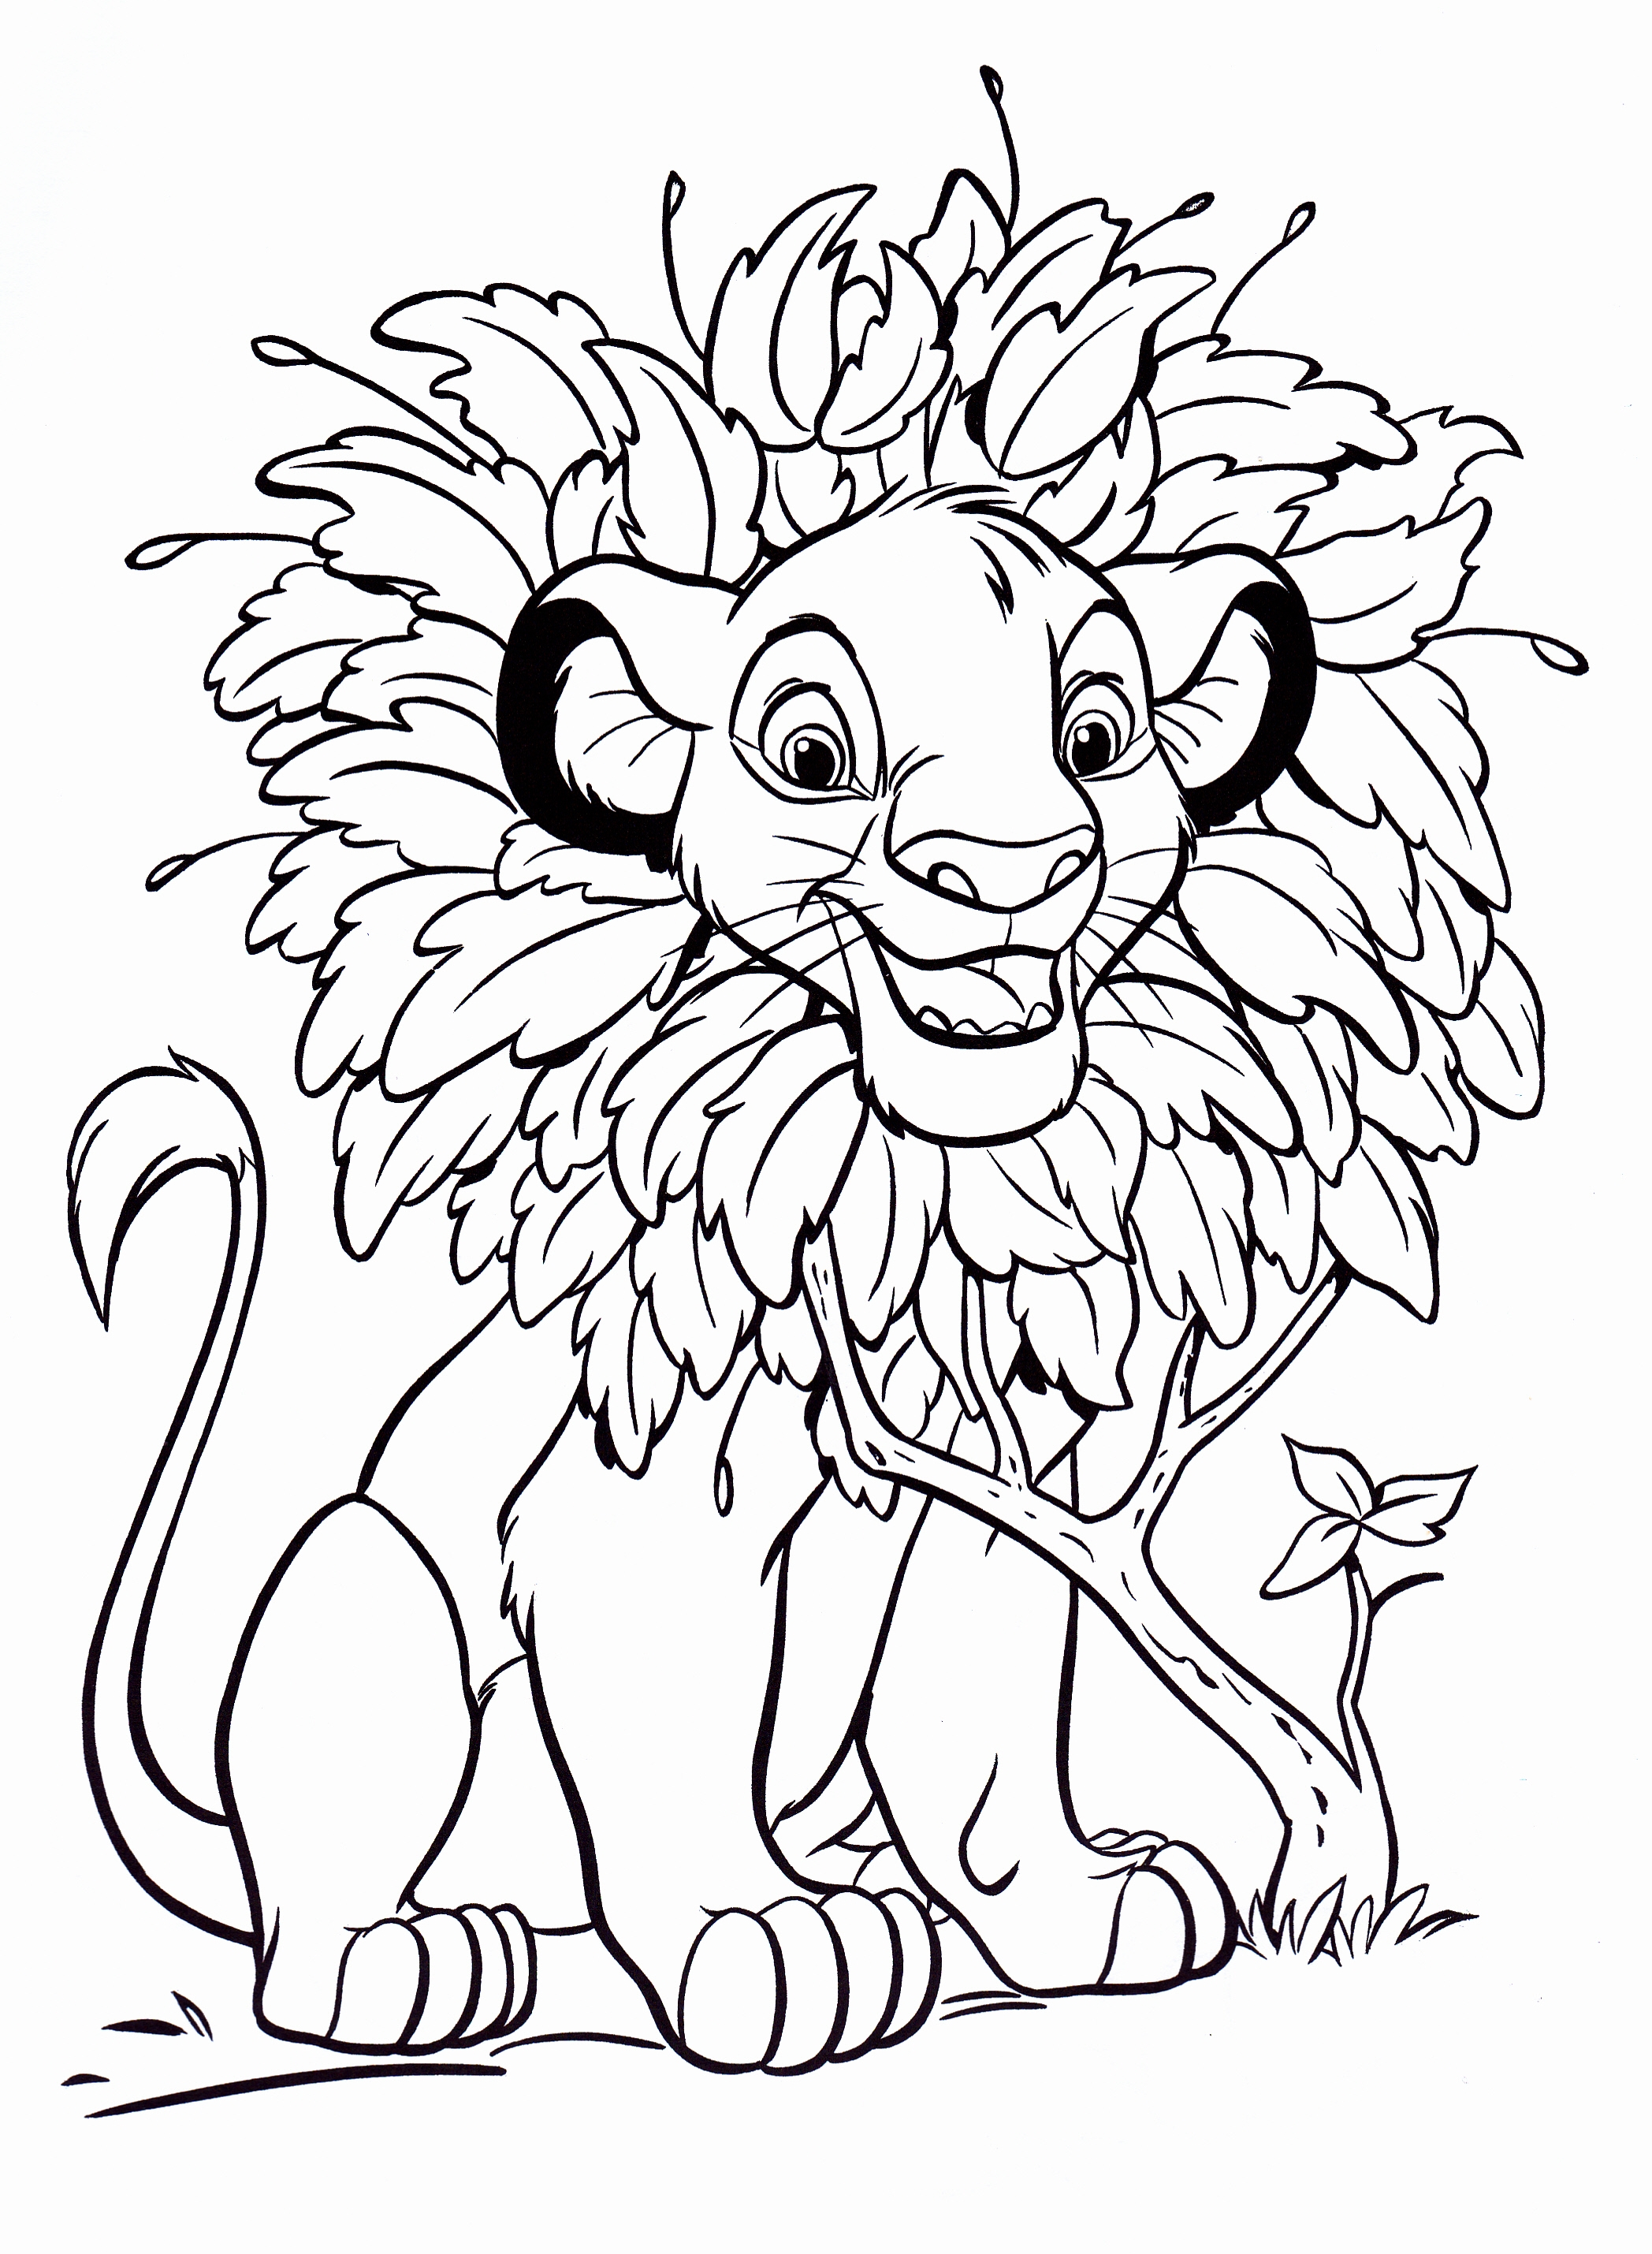 Coloring pictures disney characters - Disney Coloring Pages